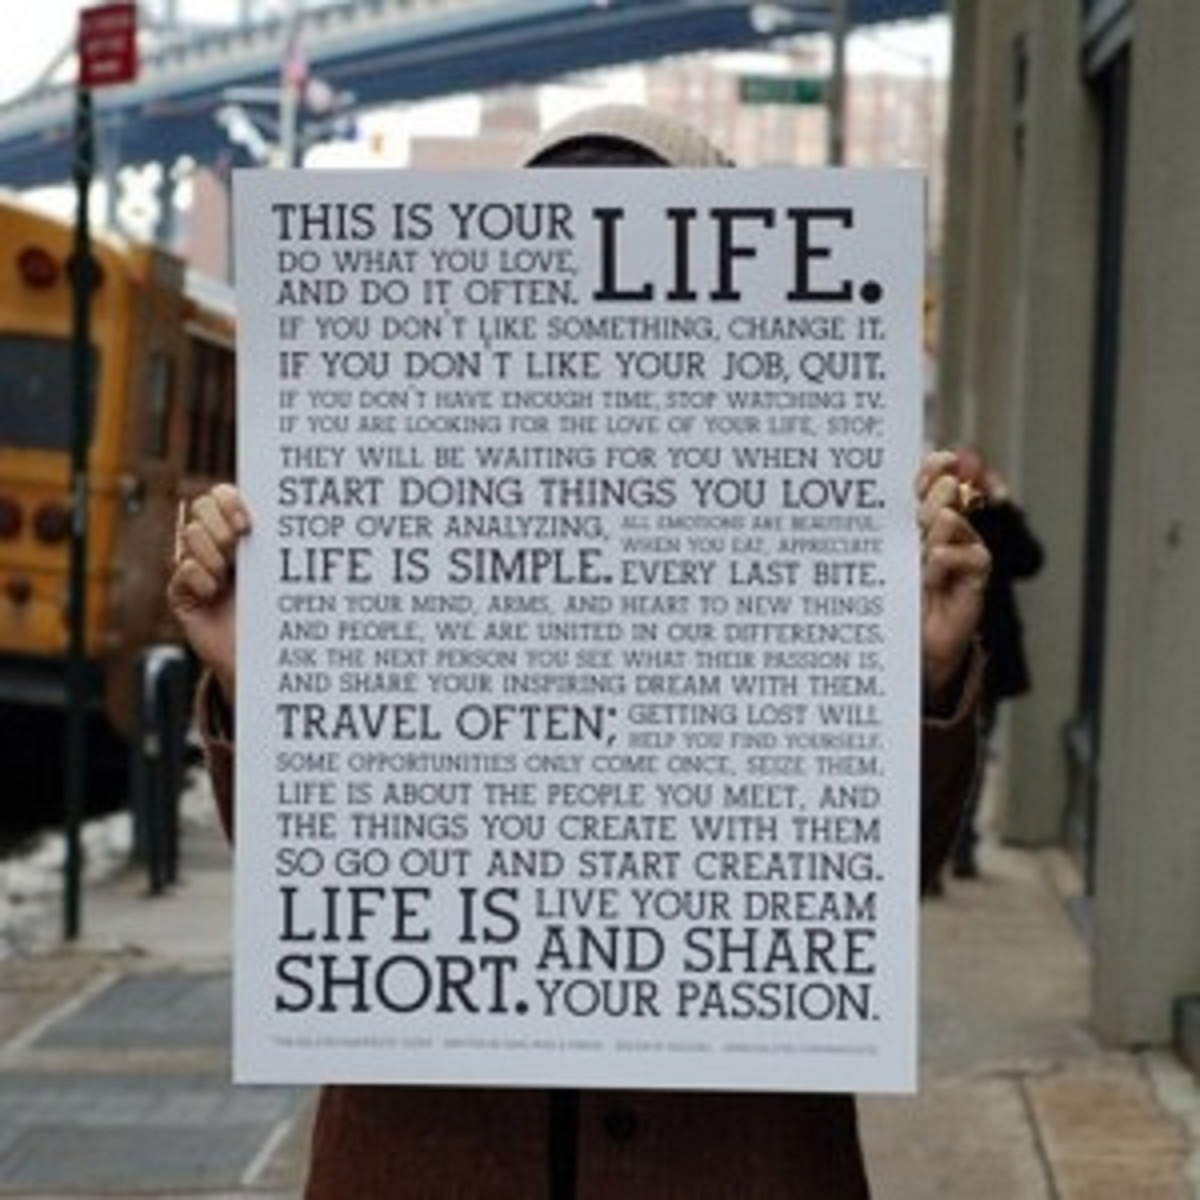 http://www.secretstopeace.com/wp-content/uploads/2011/08/This-is-your-life-poster.jpg